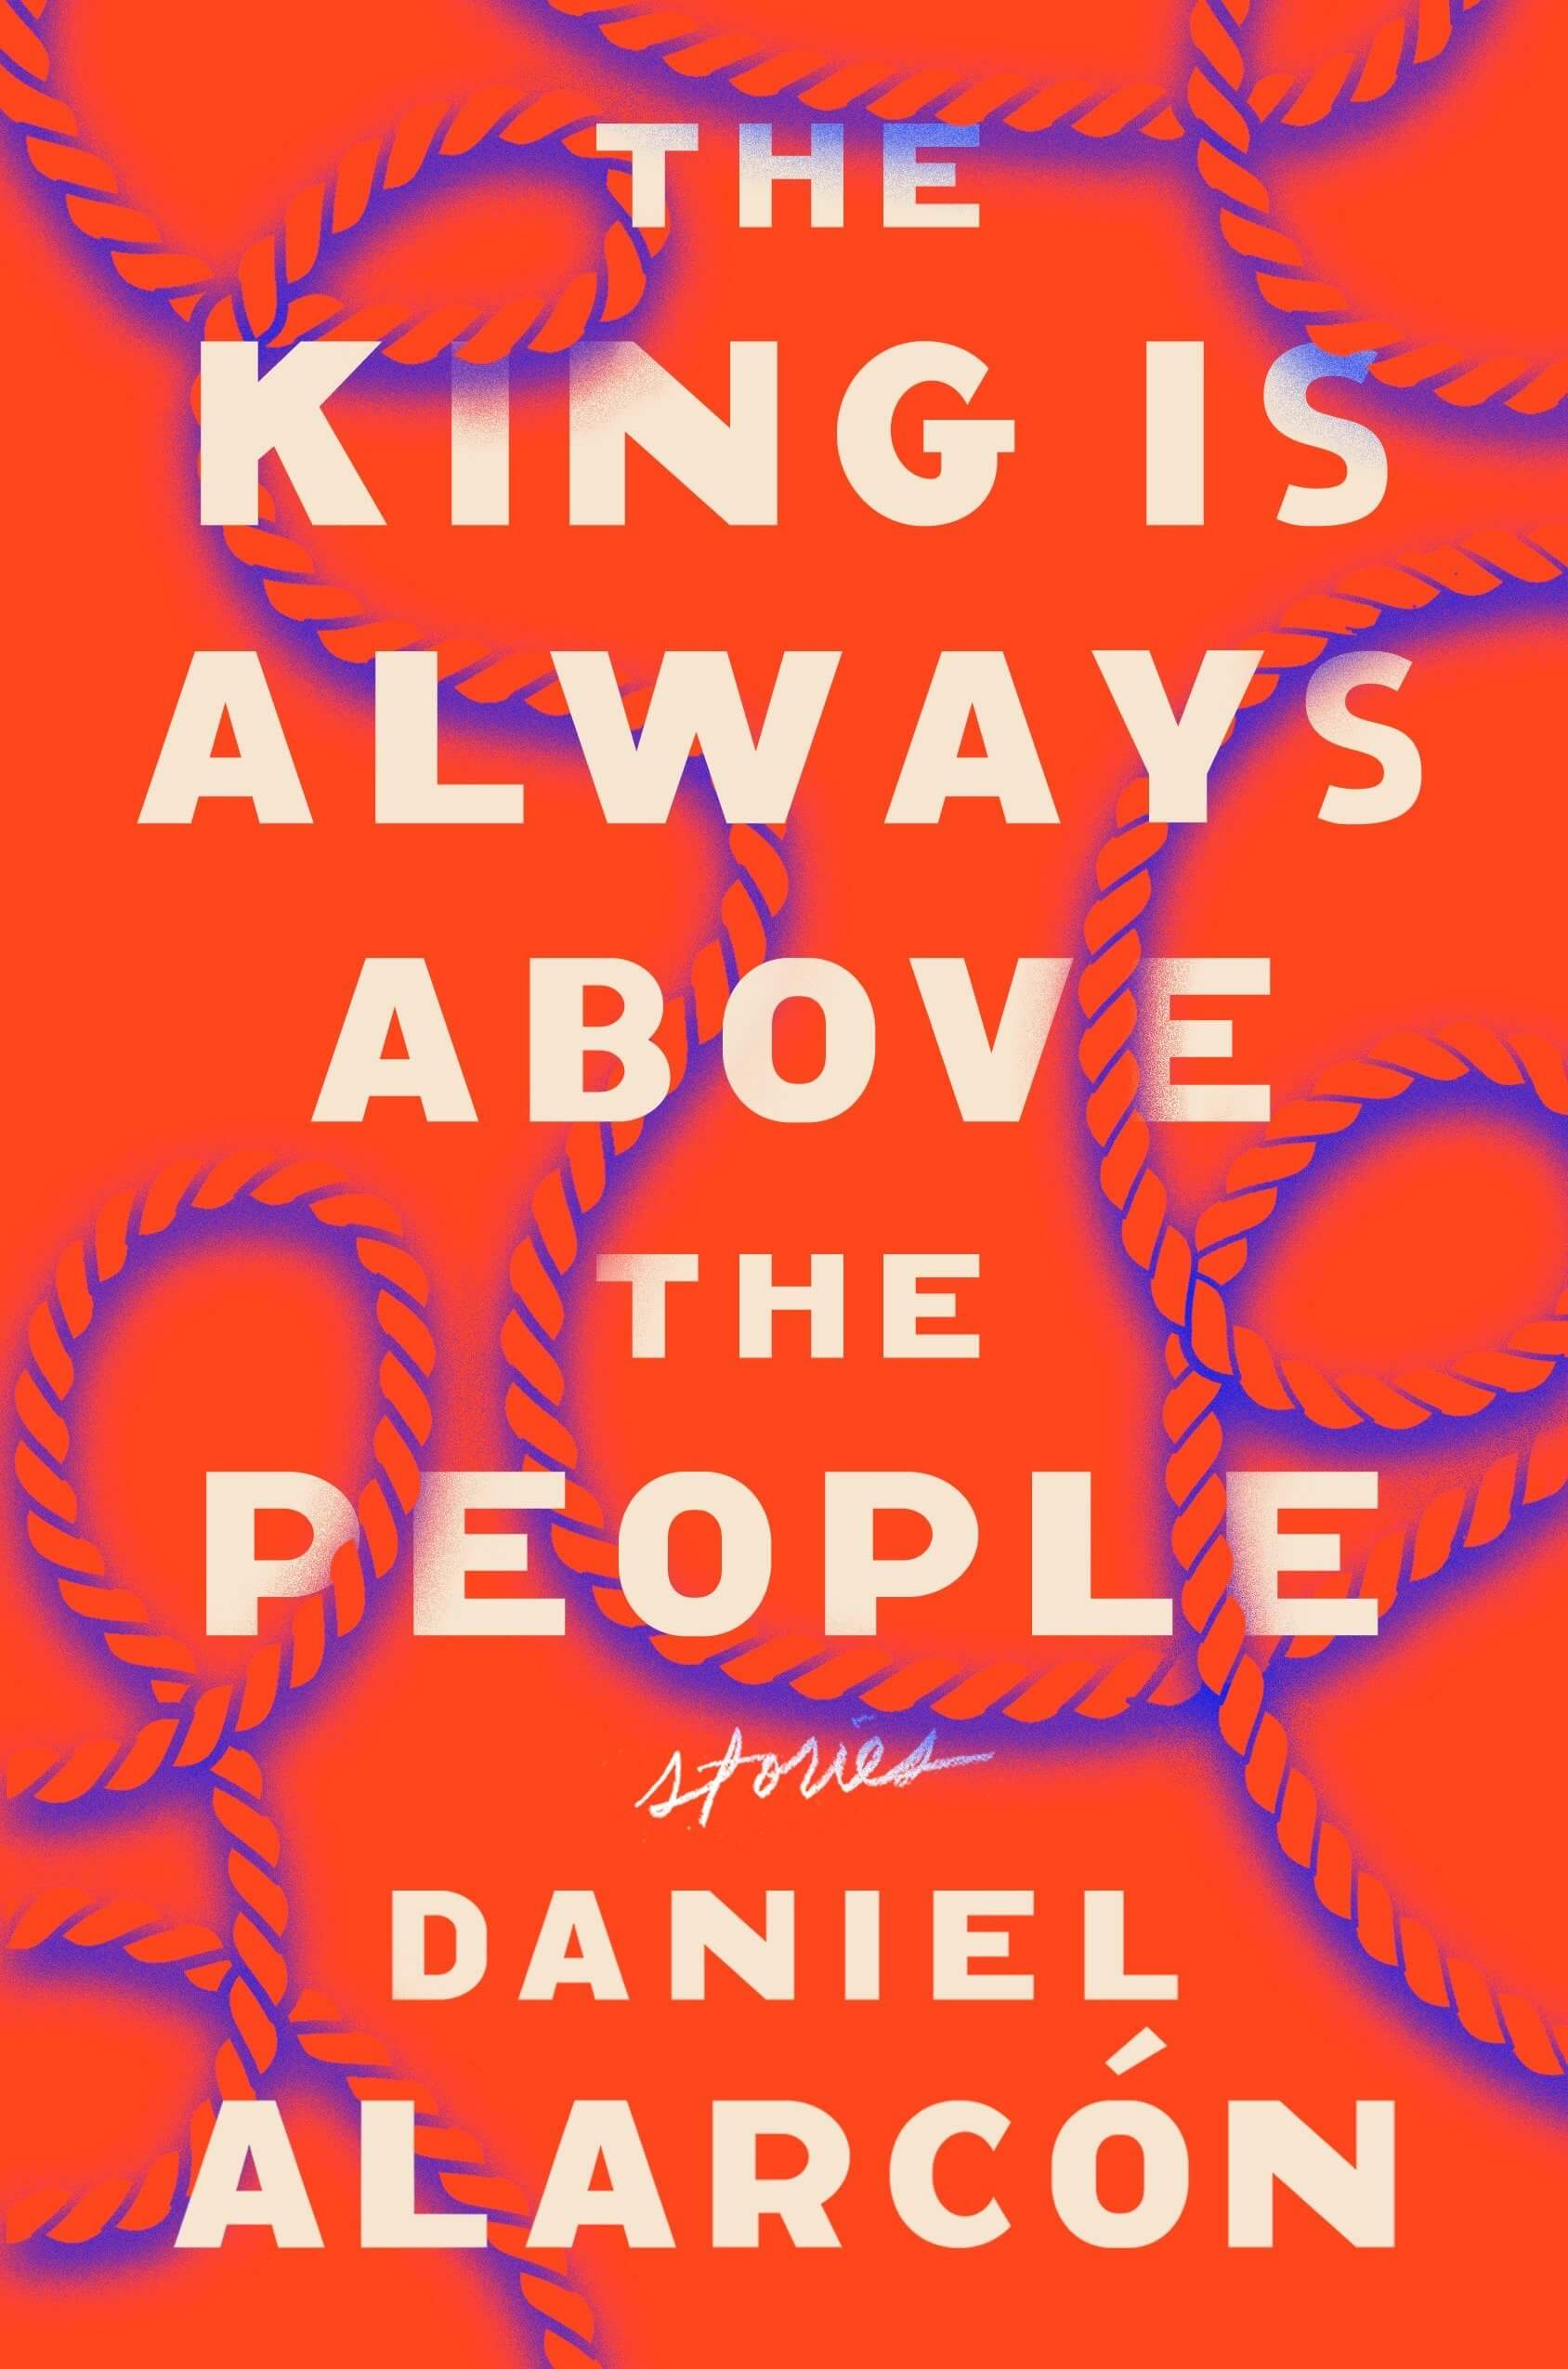 The King is Always Above the People book cover image